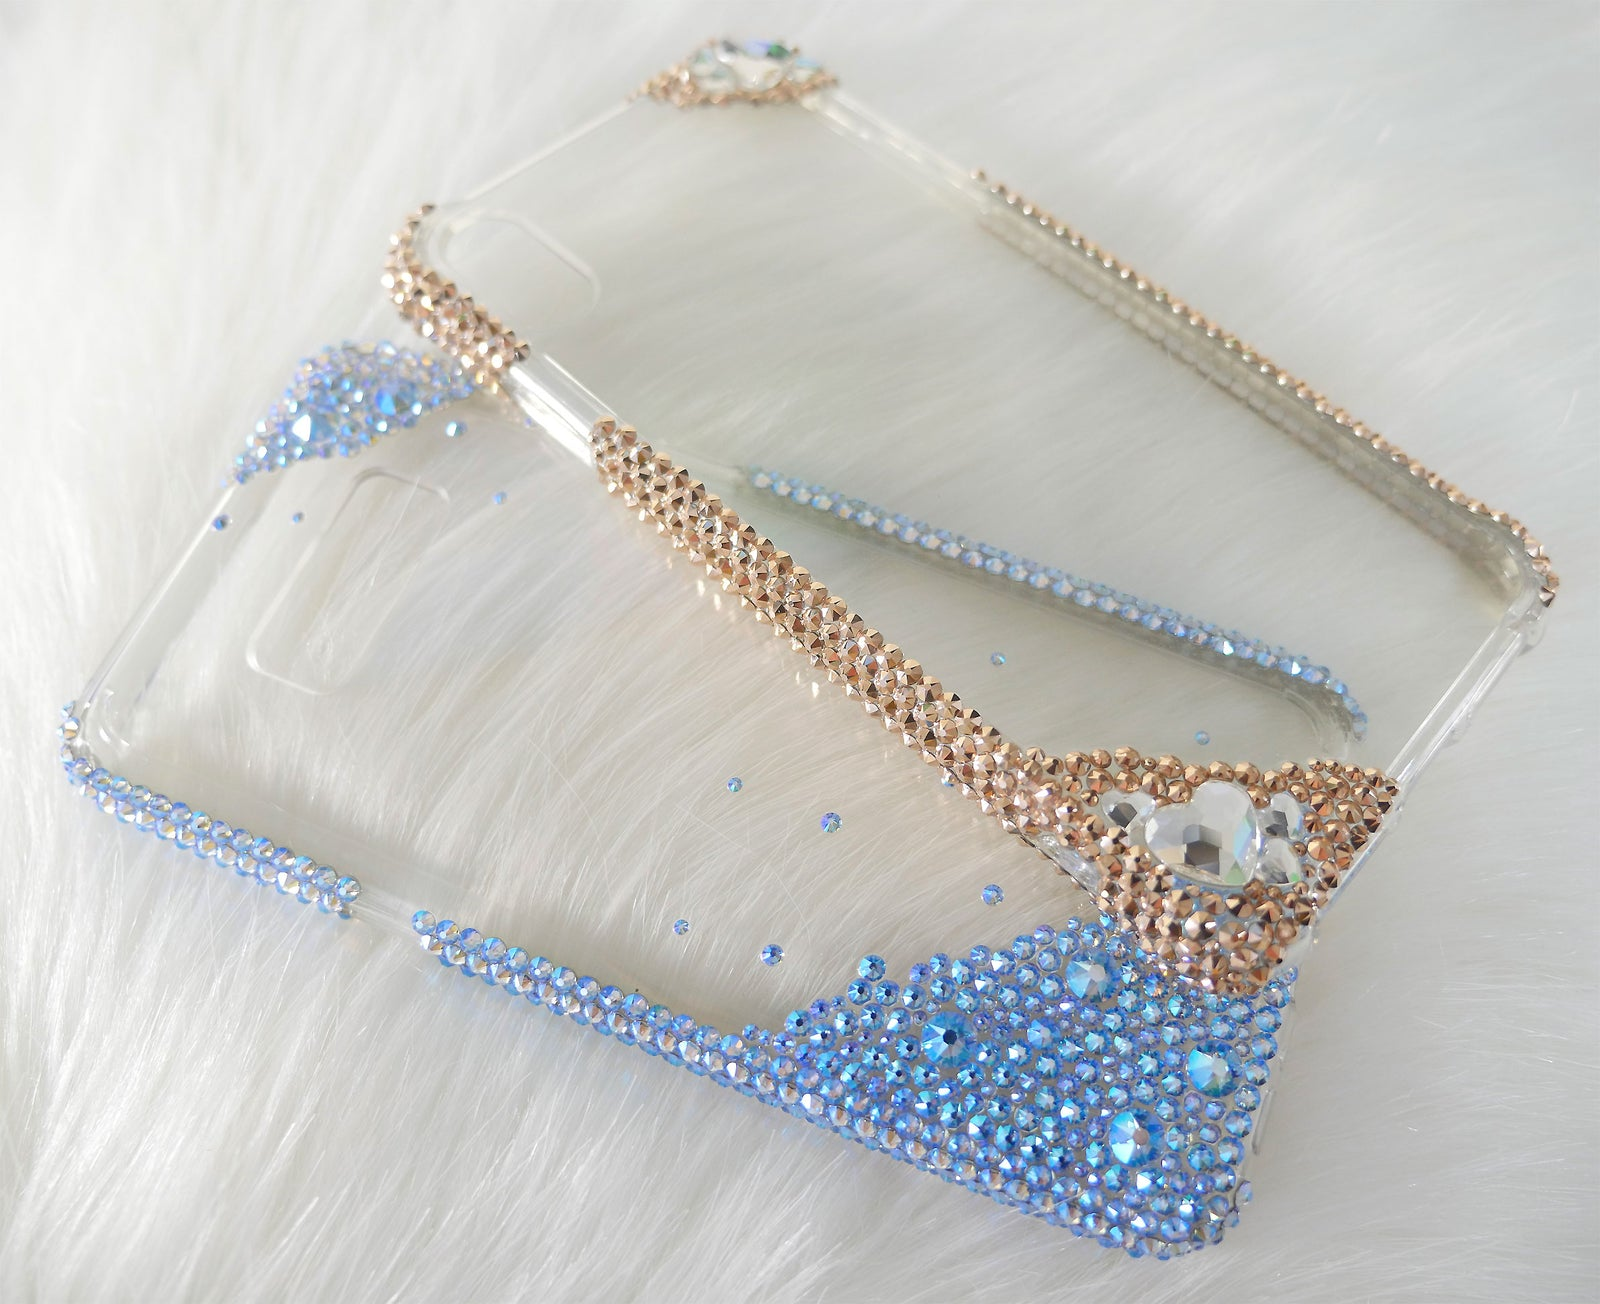 Apple iPhone XR Swarovski Crystal Cases